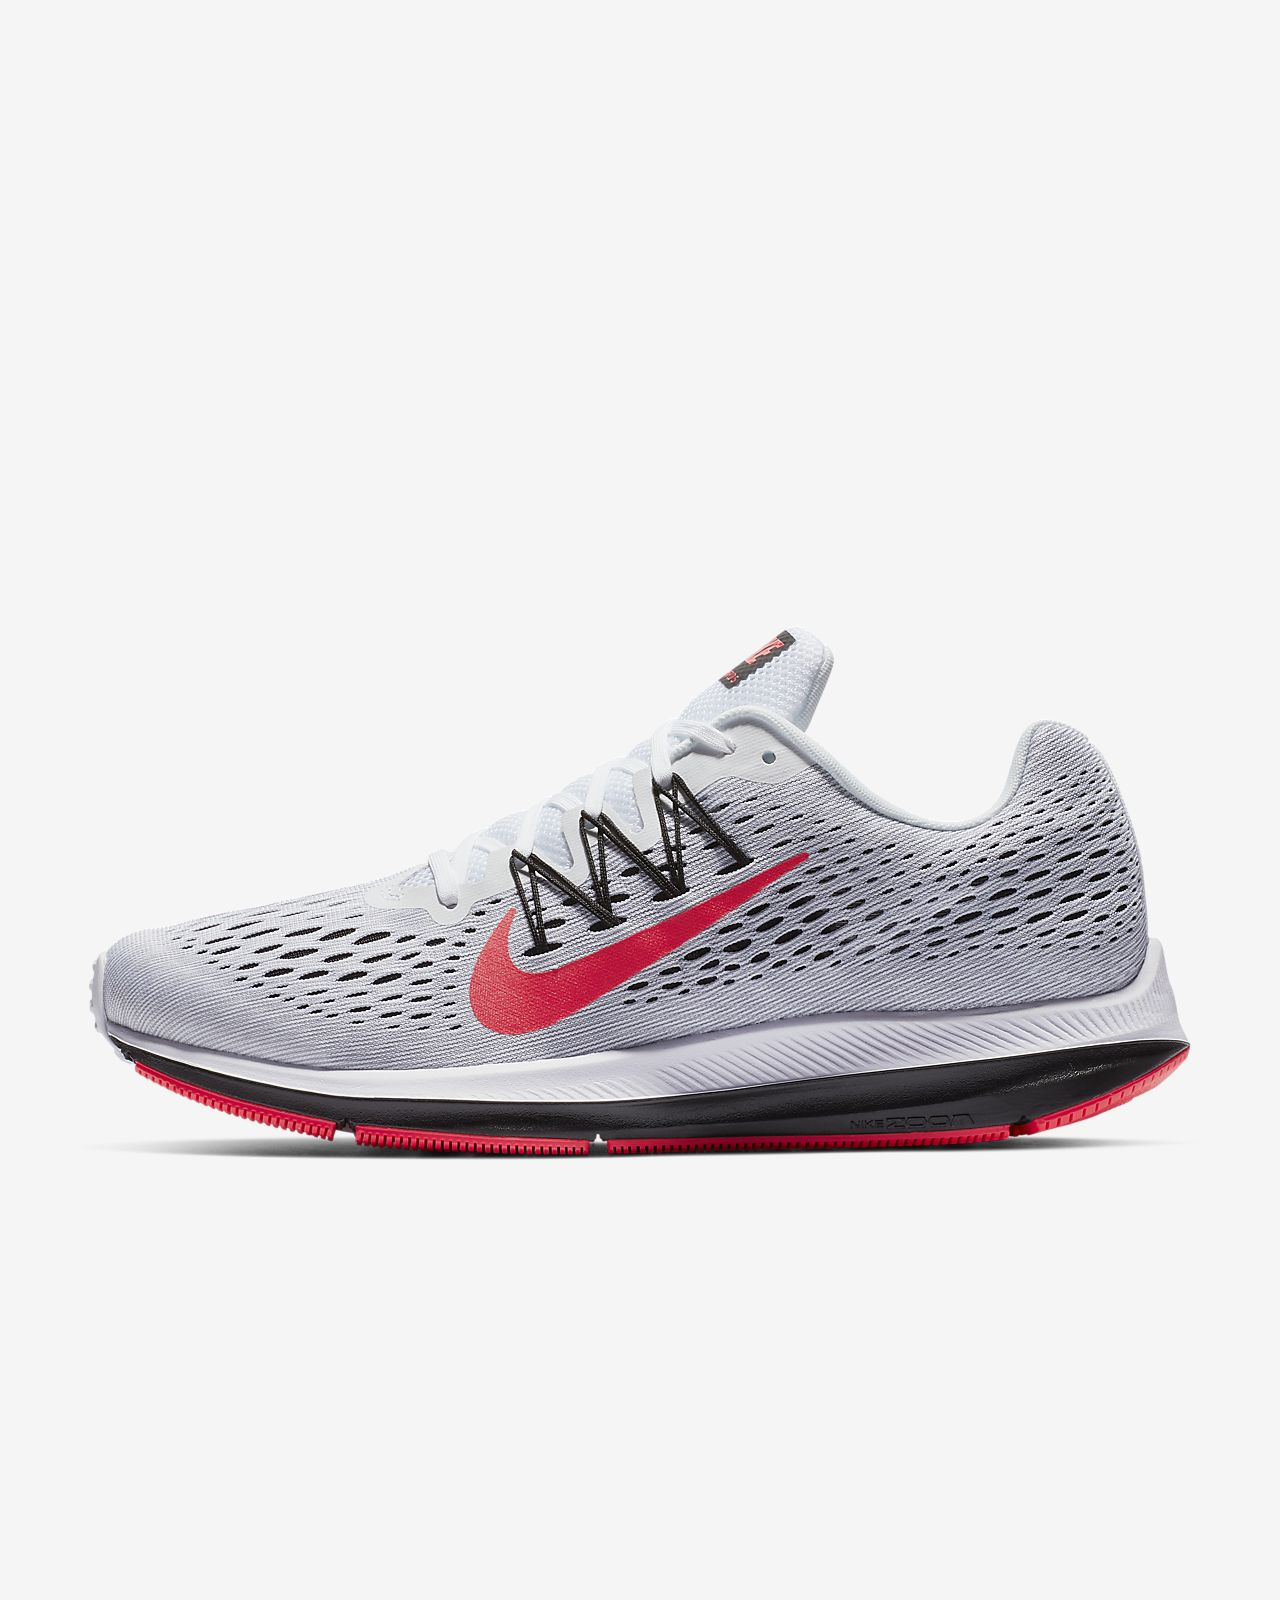 f700de171e16 Nike Air Zoom Winflo 5 Men s Running Shoe. Nike.com IN